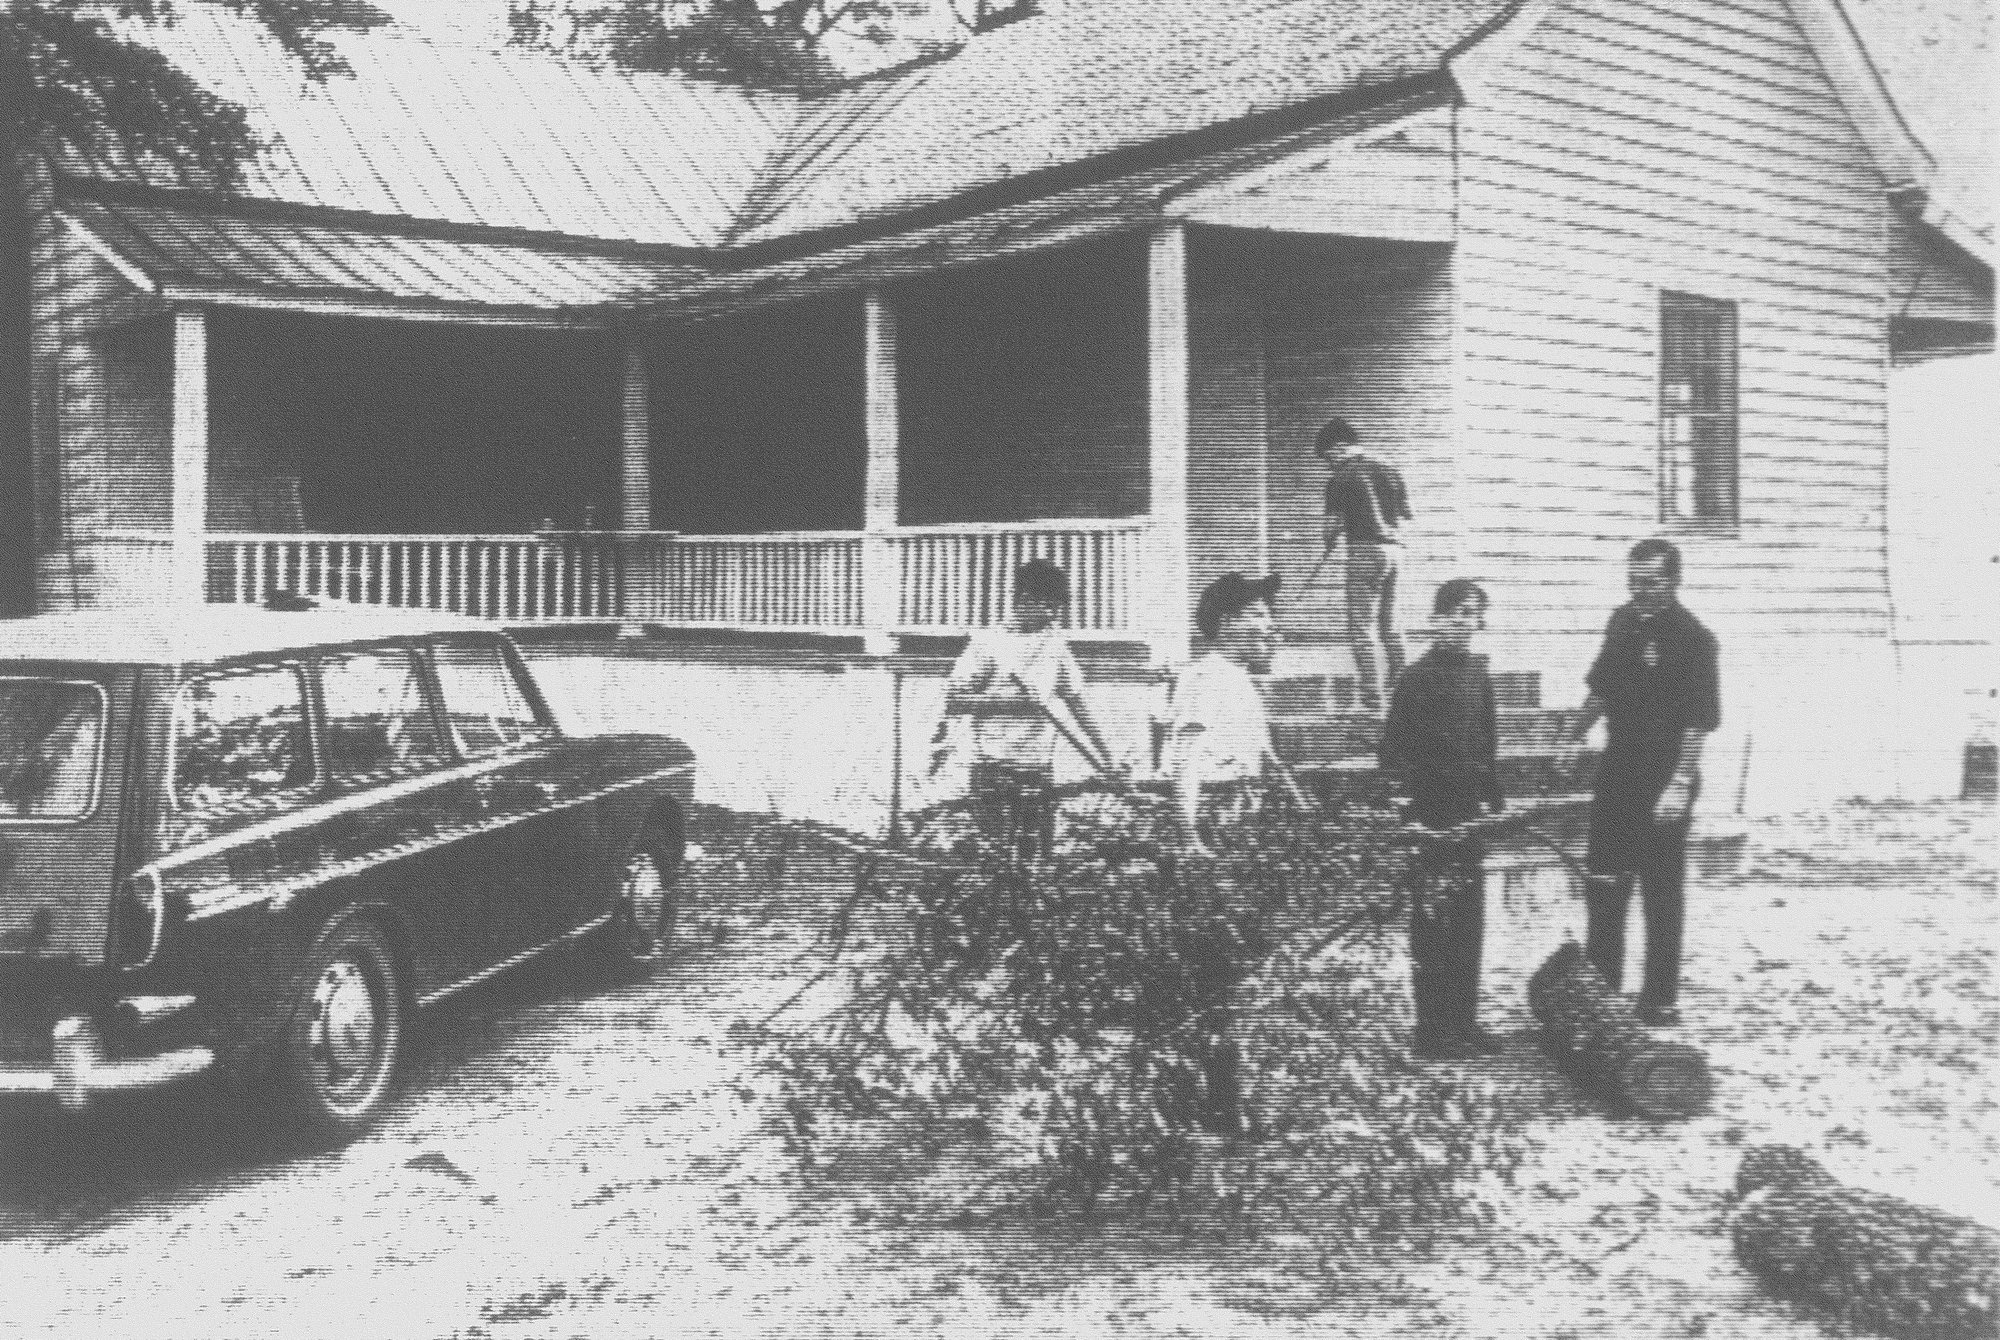 1968 - This six-room house with three porches was converted from a family home to a coffeehouse for youth in the Mayewood School area. Rev. B. A. Wesley, far right, and some of the boys finish clearing the yard. Teenagers from the community worked on the house for two weeks getting it ready for their opening night. Three of the rooms were to be used as game rooms, two for music and one for food.